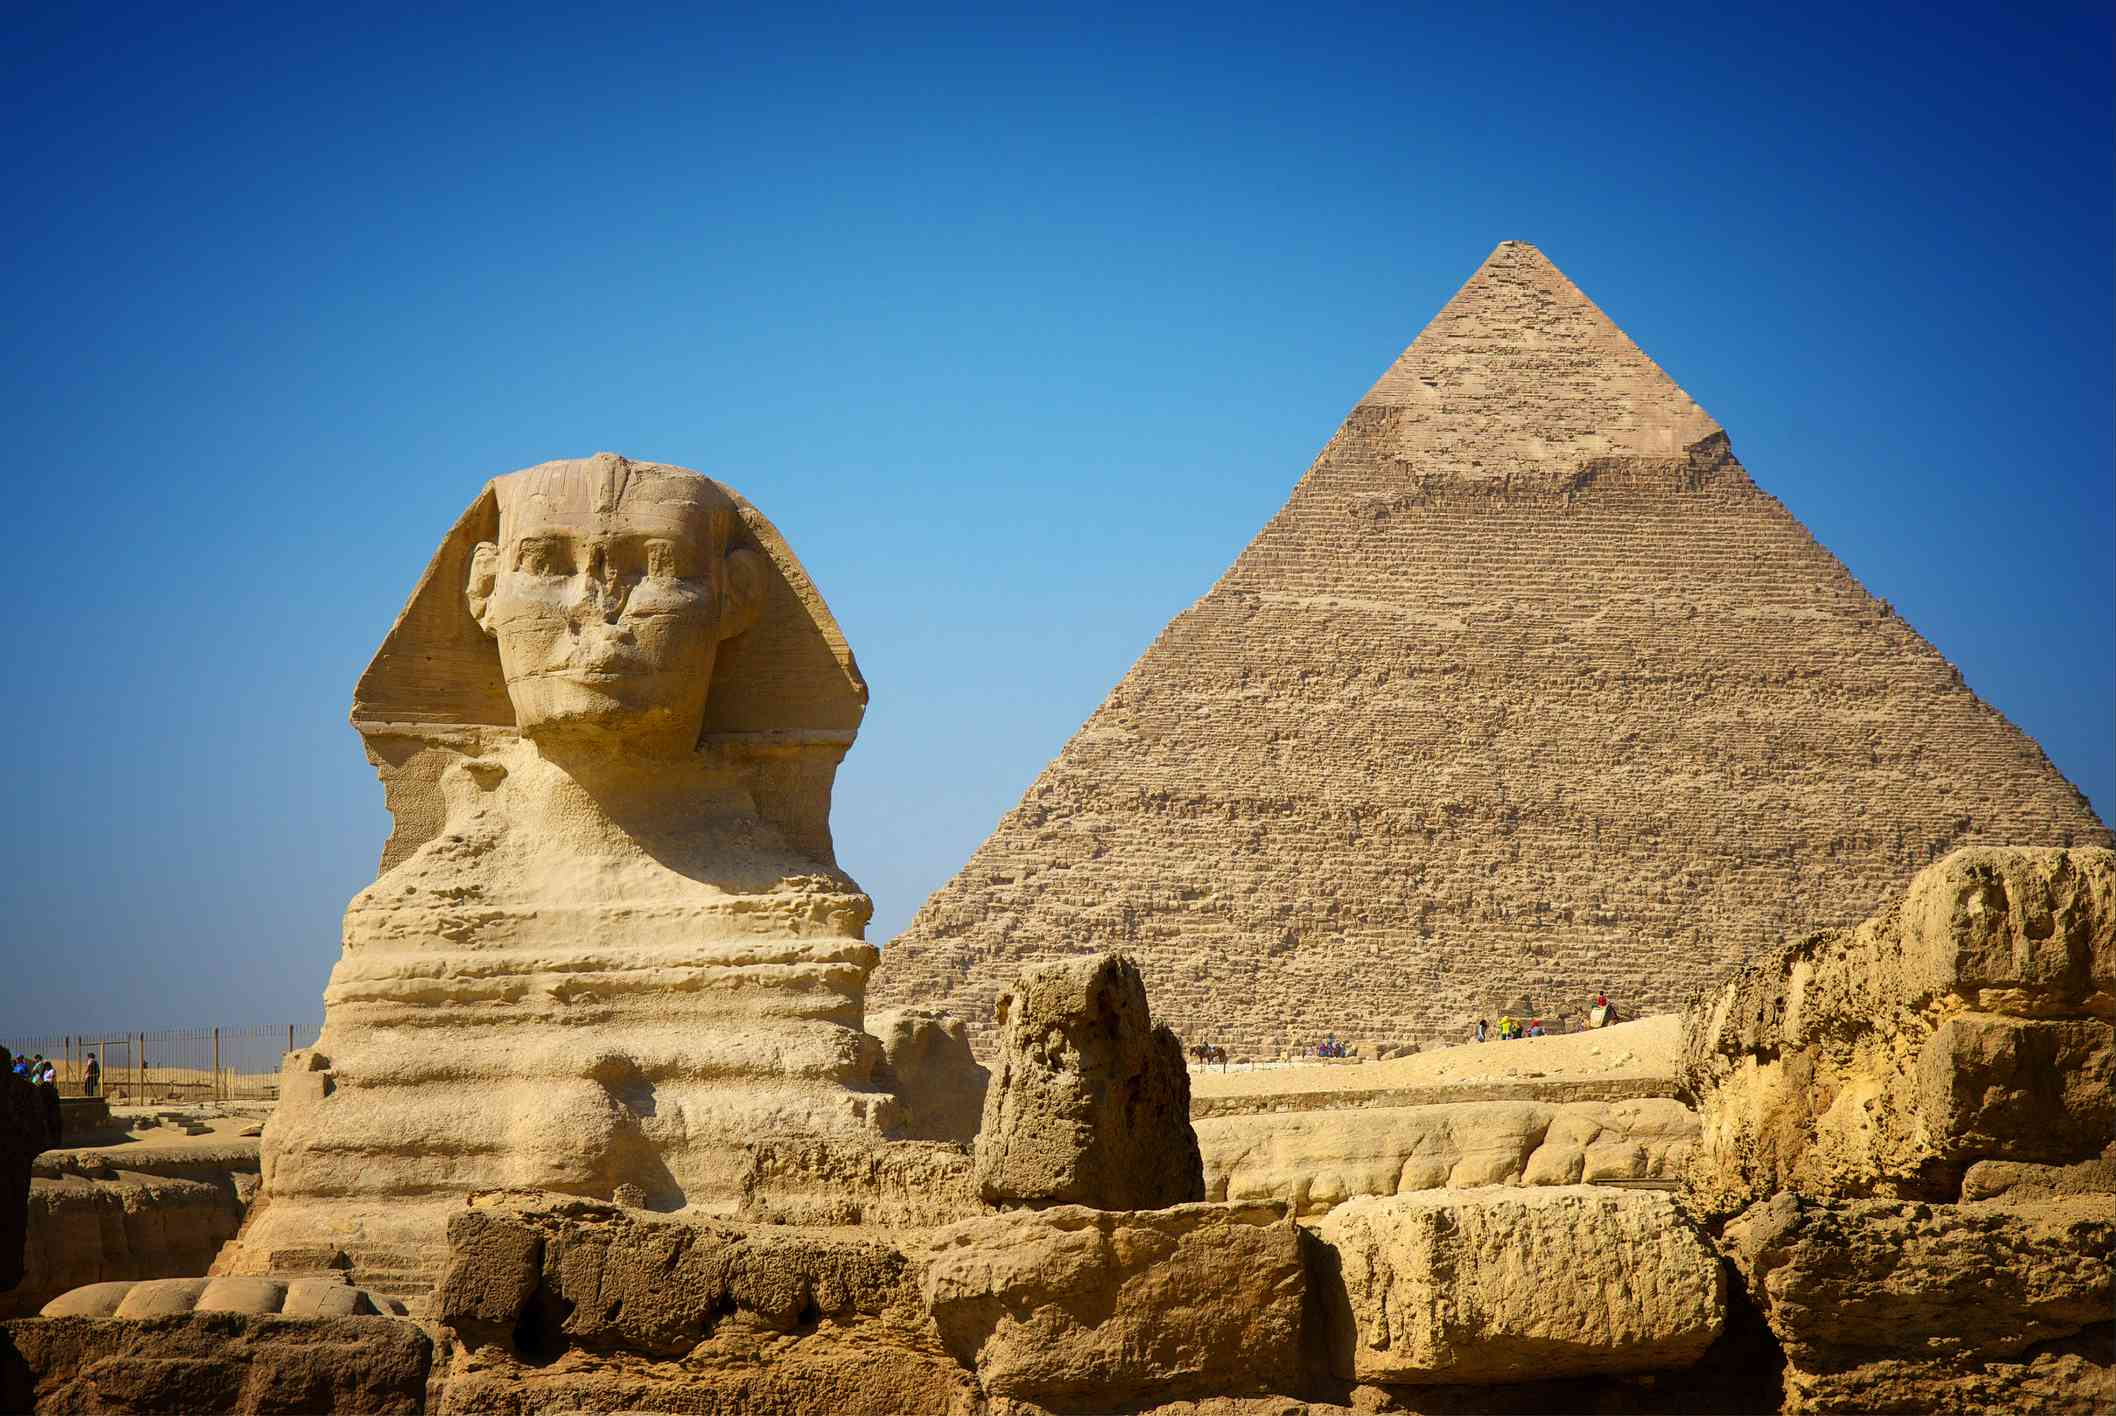 Pyramid of Khafre with Great Sphinx, Giza